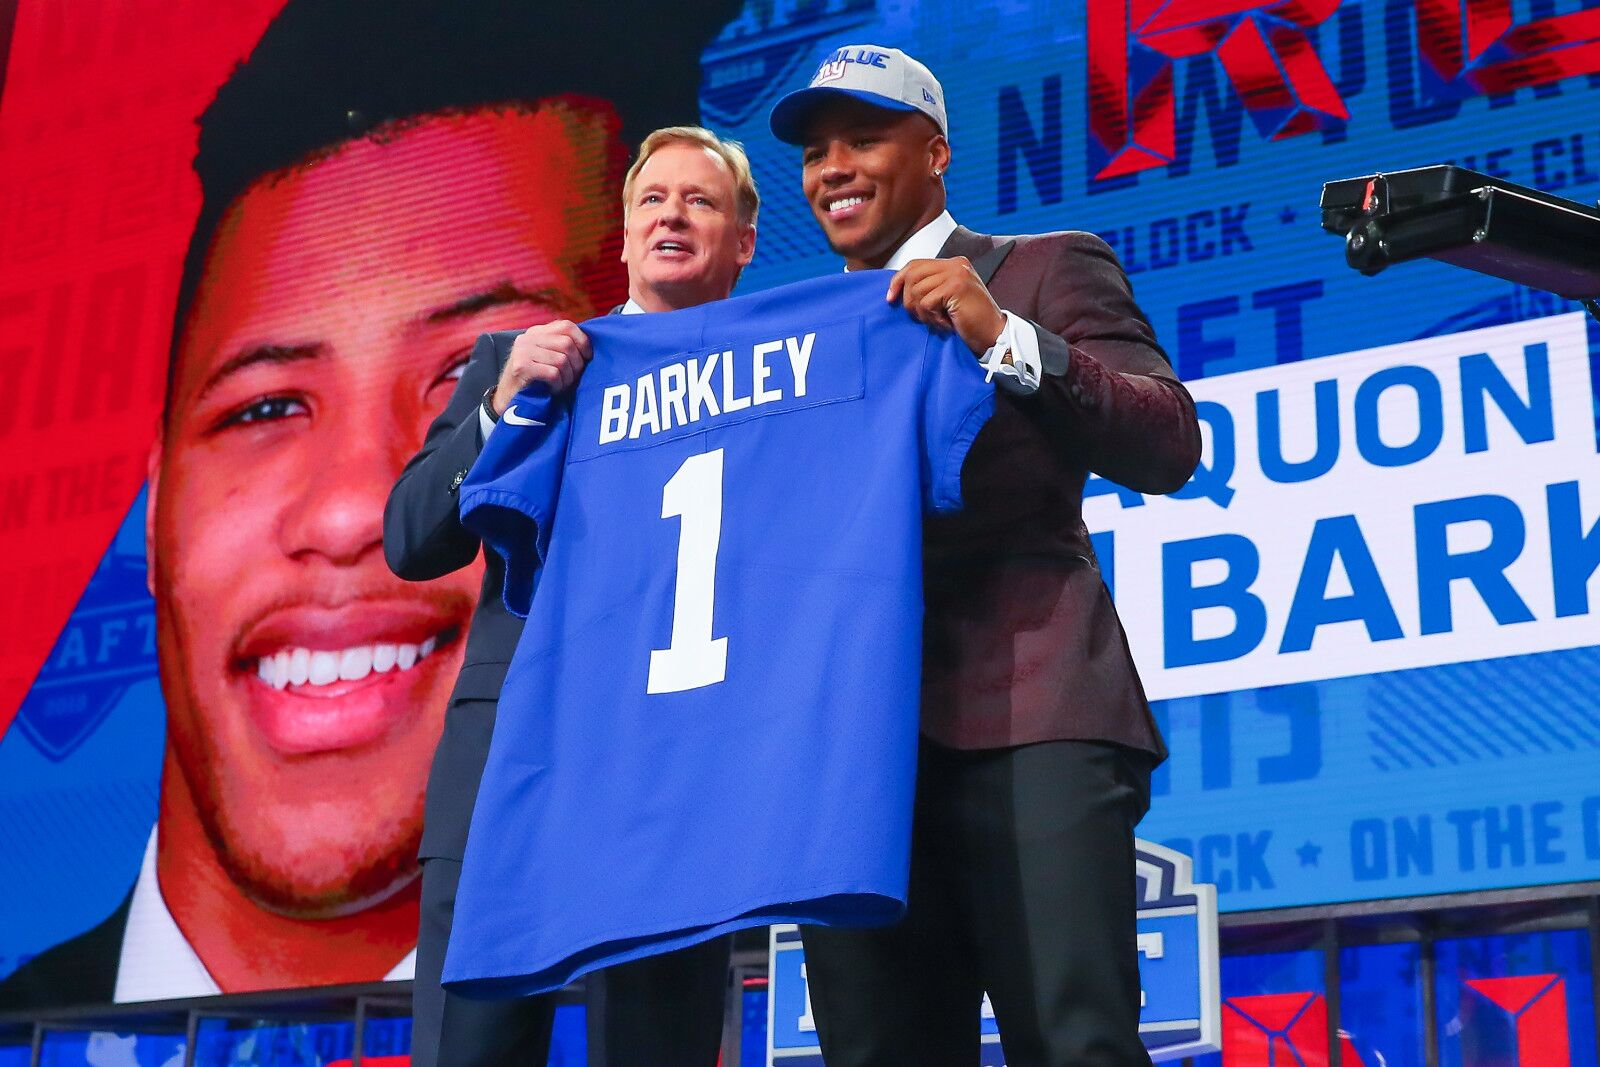 ARLINGTON, TX - APRIL 26: Saquon Barkley and NFL Commissioner Roger Goodell hold up a NY Giants jersey after being selected by the New York Giants with the 2nd pick during the First Round of the 2018 NFL Draft on April 26, 2018 at AT&T Stadium in Arlington Texas. ( Rich Graessle/Icon Sportswire via Getty Images)